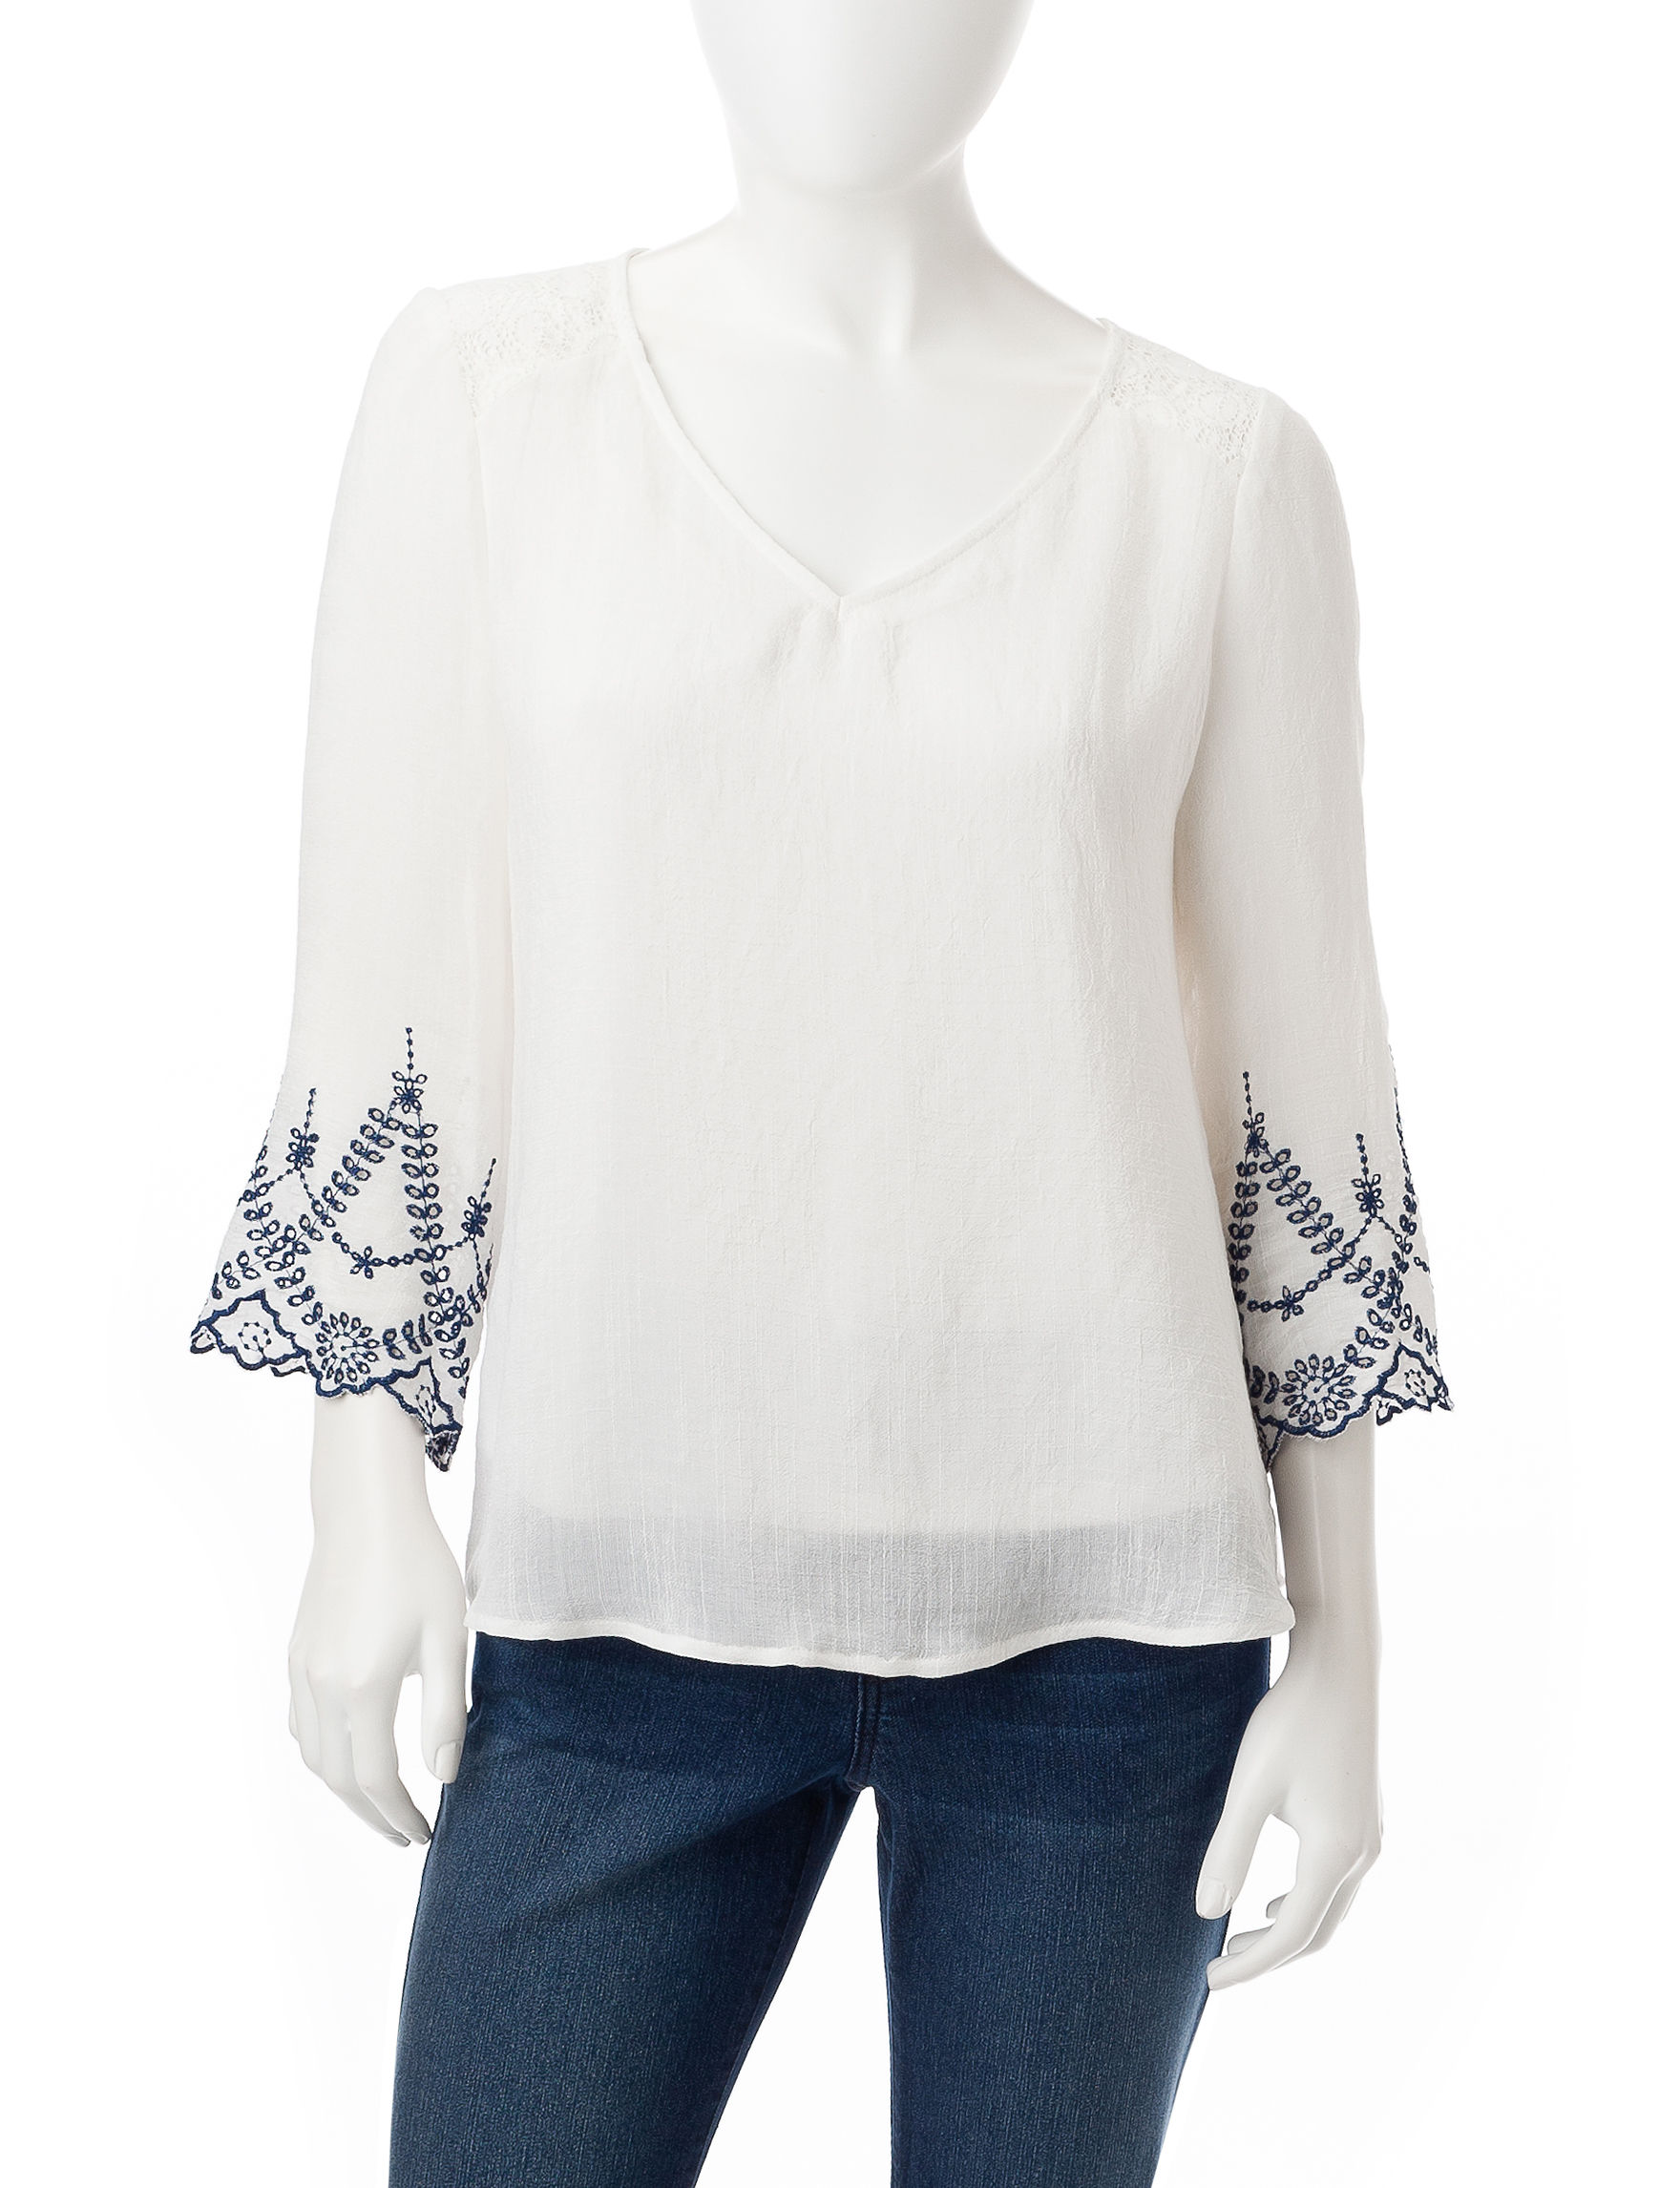 Figuero & Flower Ivory/Navy Shirts & Blouses